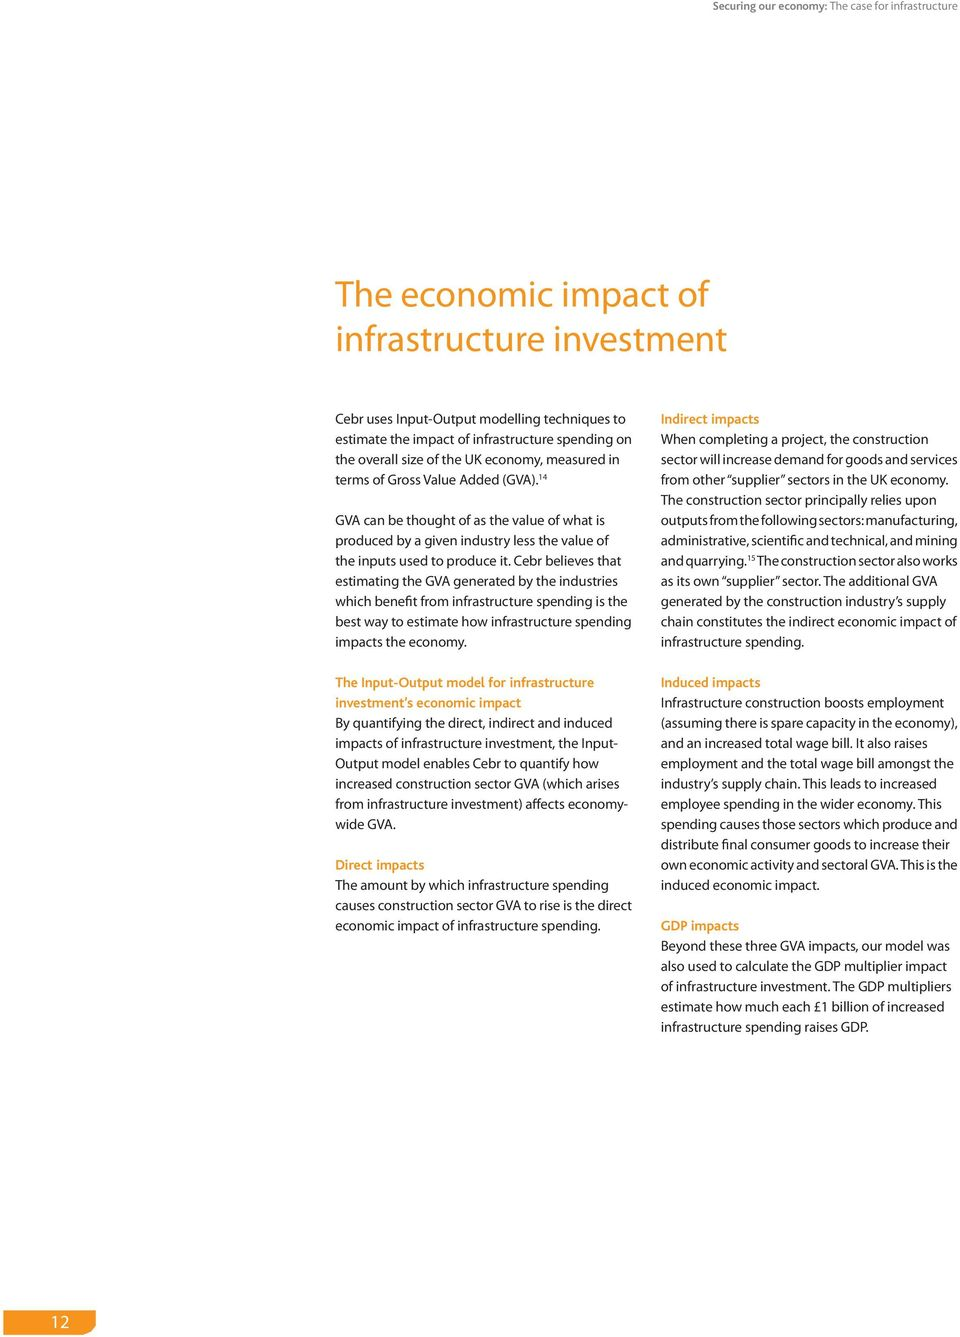 Cebr believes that estimating the GVA generated by the industries which benefit from infrastructure spending is the best way to estimate how infrastructure spending impacts the economy.